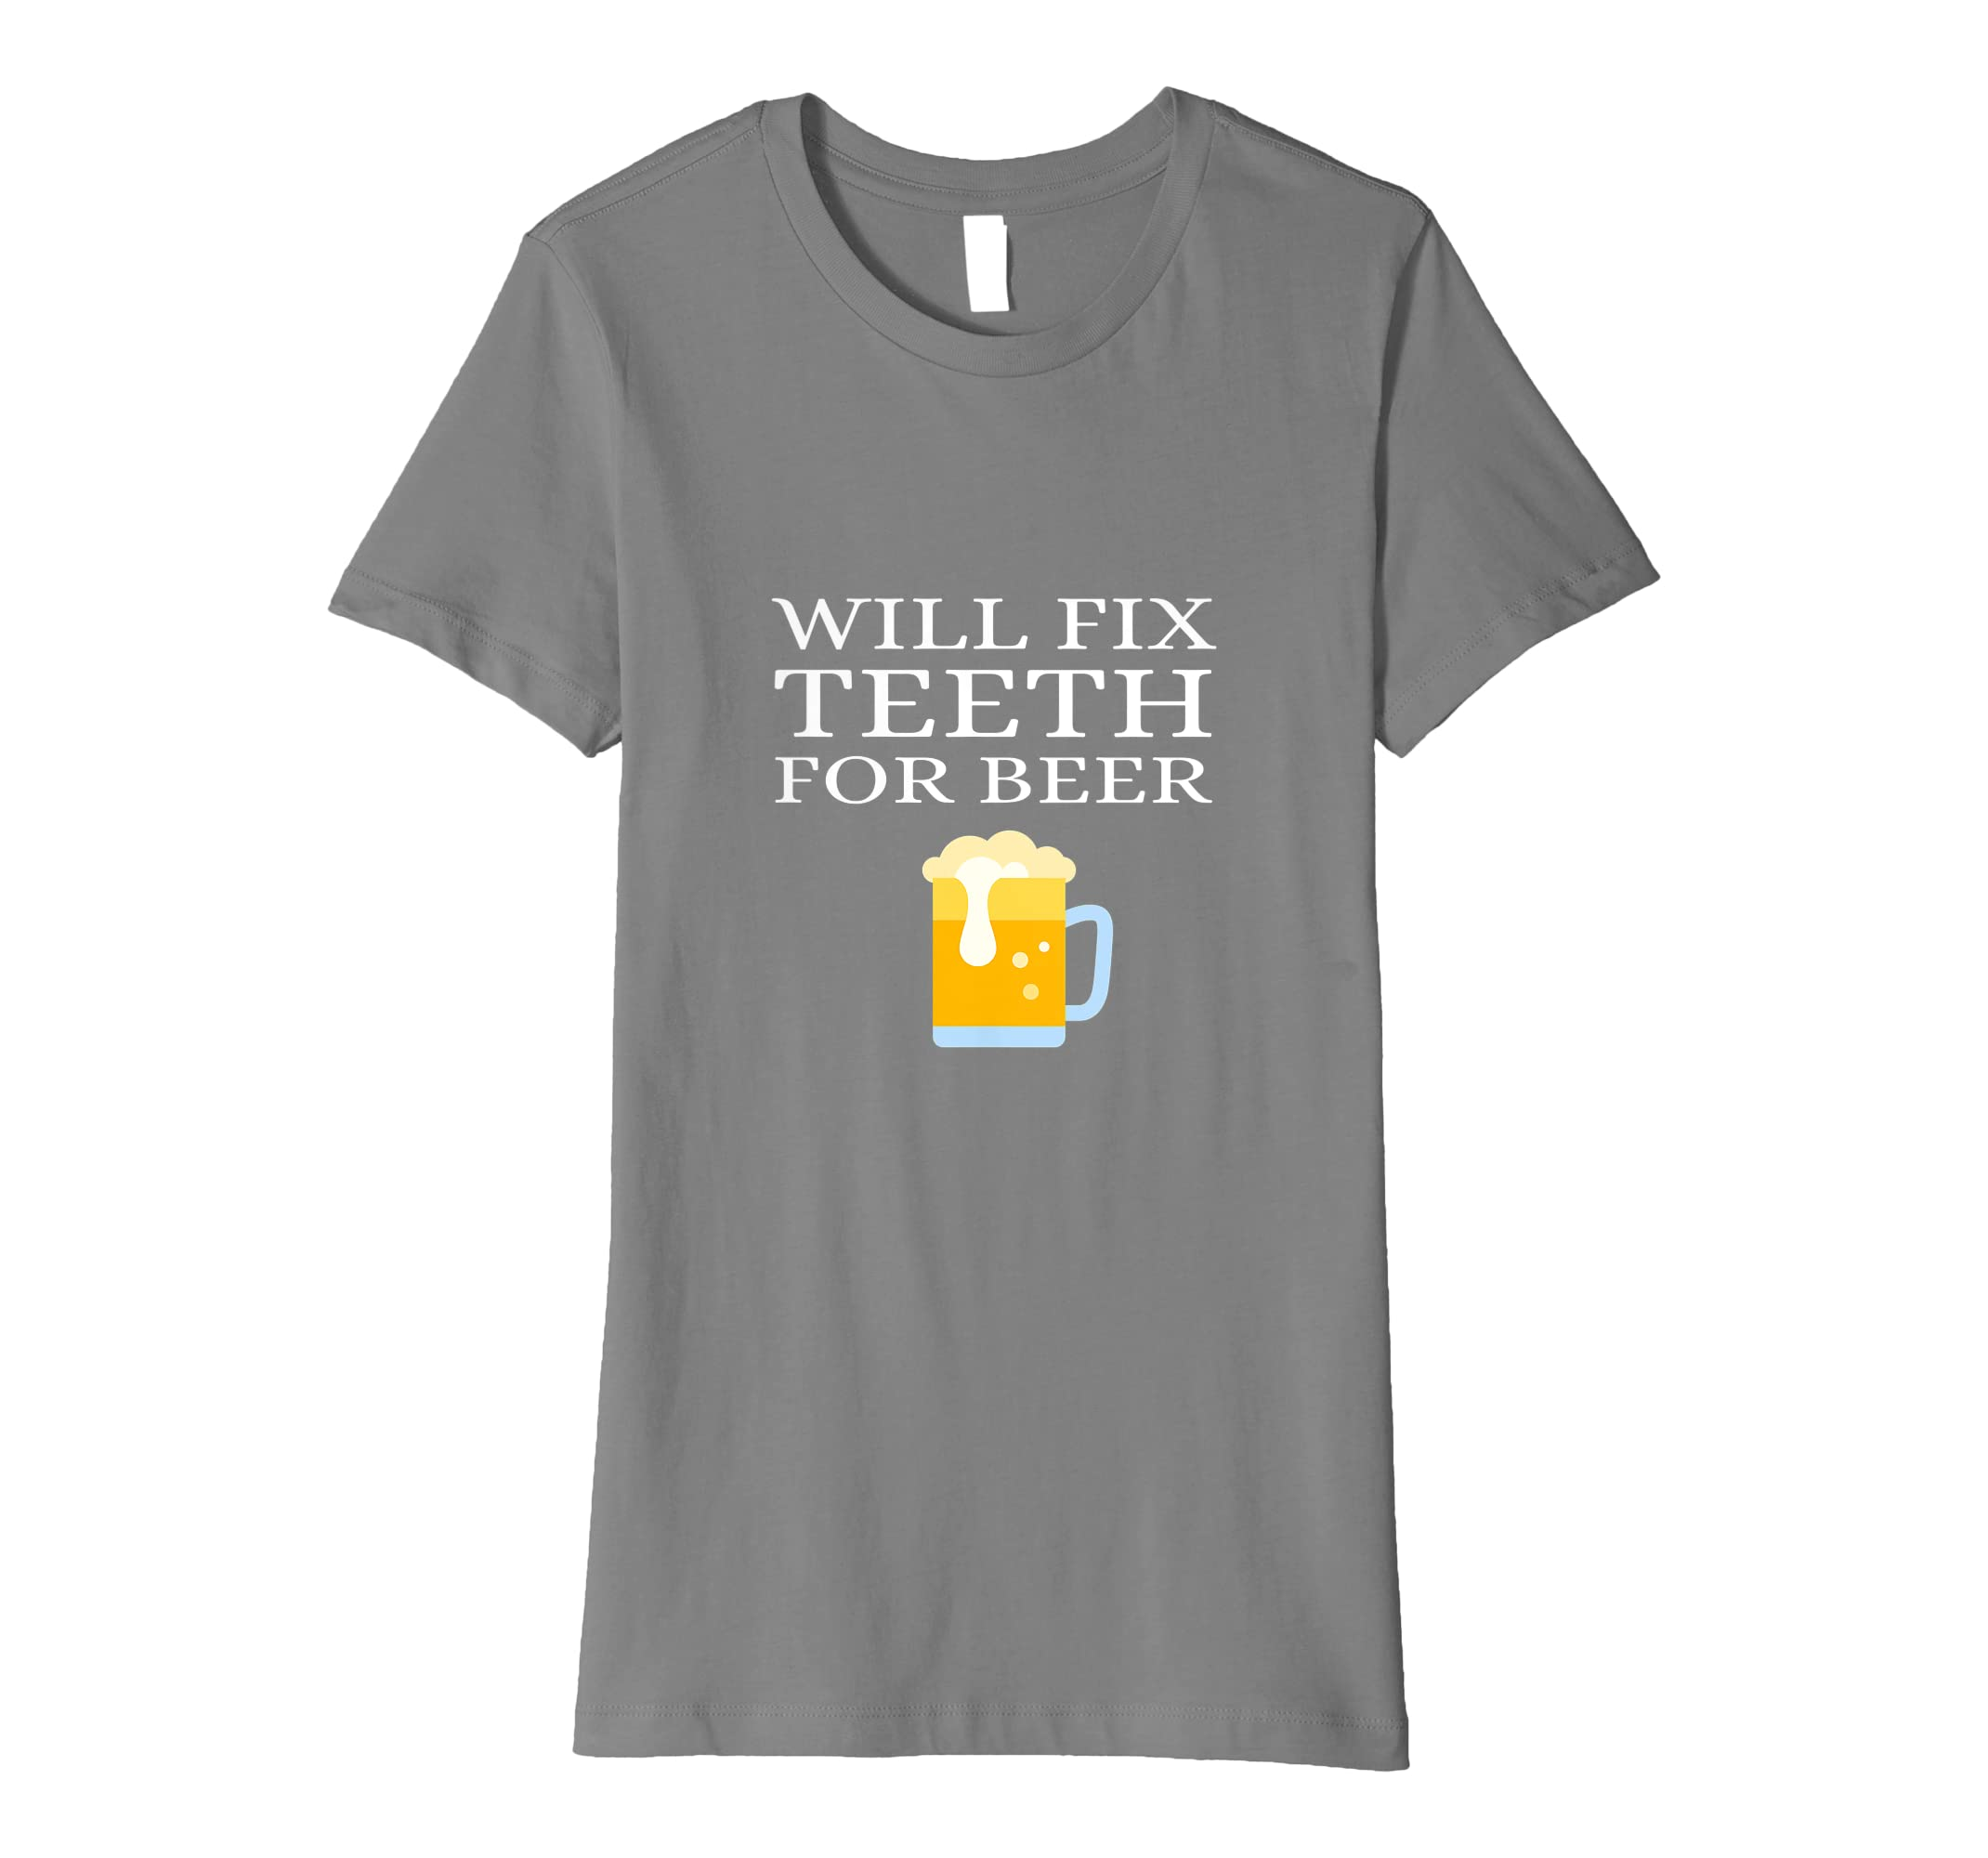 e39d38380 Amazon.com: Will Fix Teeth For Beer Funny Dentist Orthodontist Tee Shirt:  Clothing